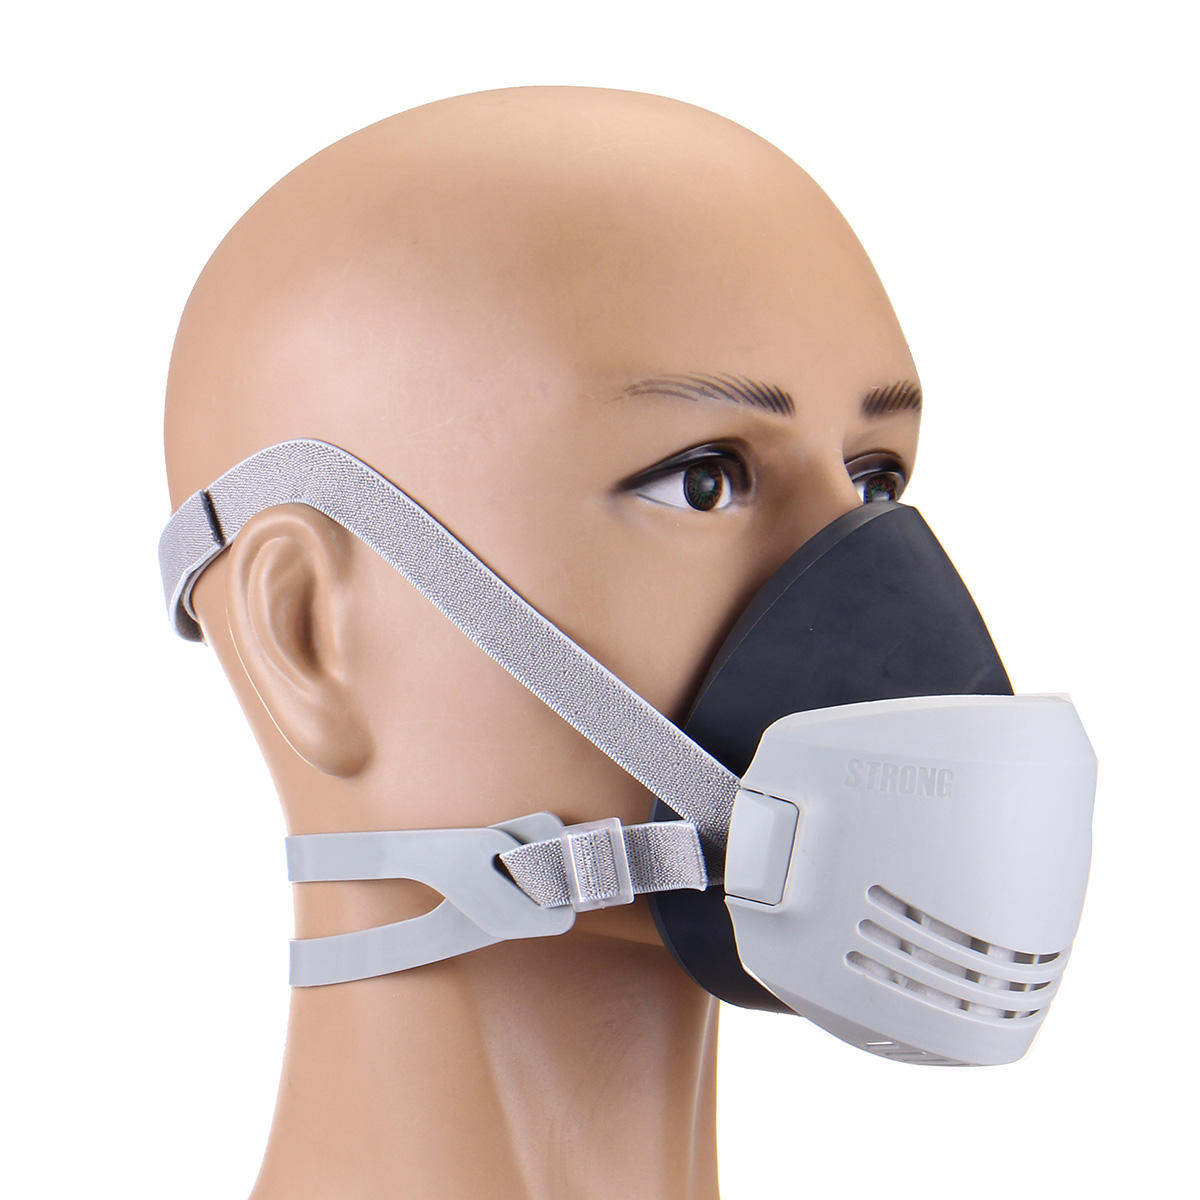 Respiratory Mask Facepiece Reusable Respiratory Protection Industry Face Mask Dust Painting Spraying Filter Respirator Gas Mask